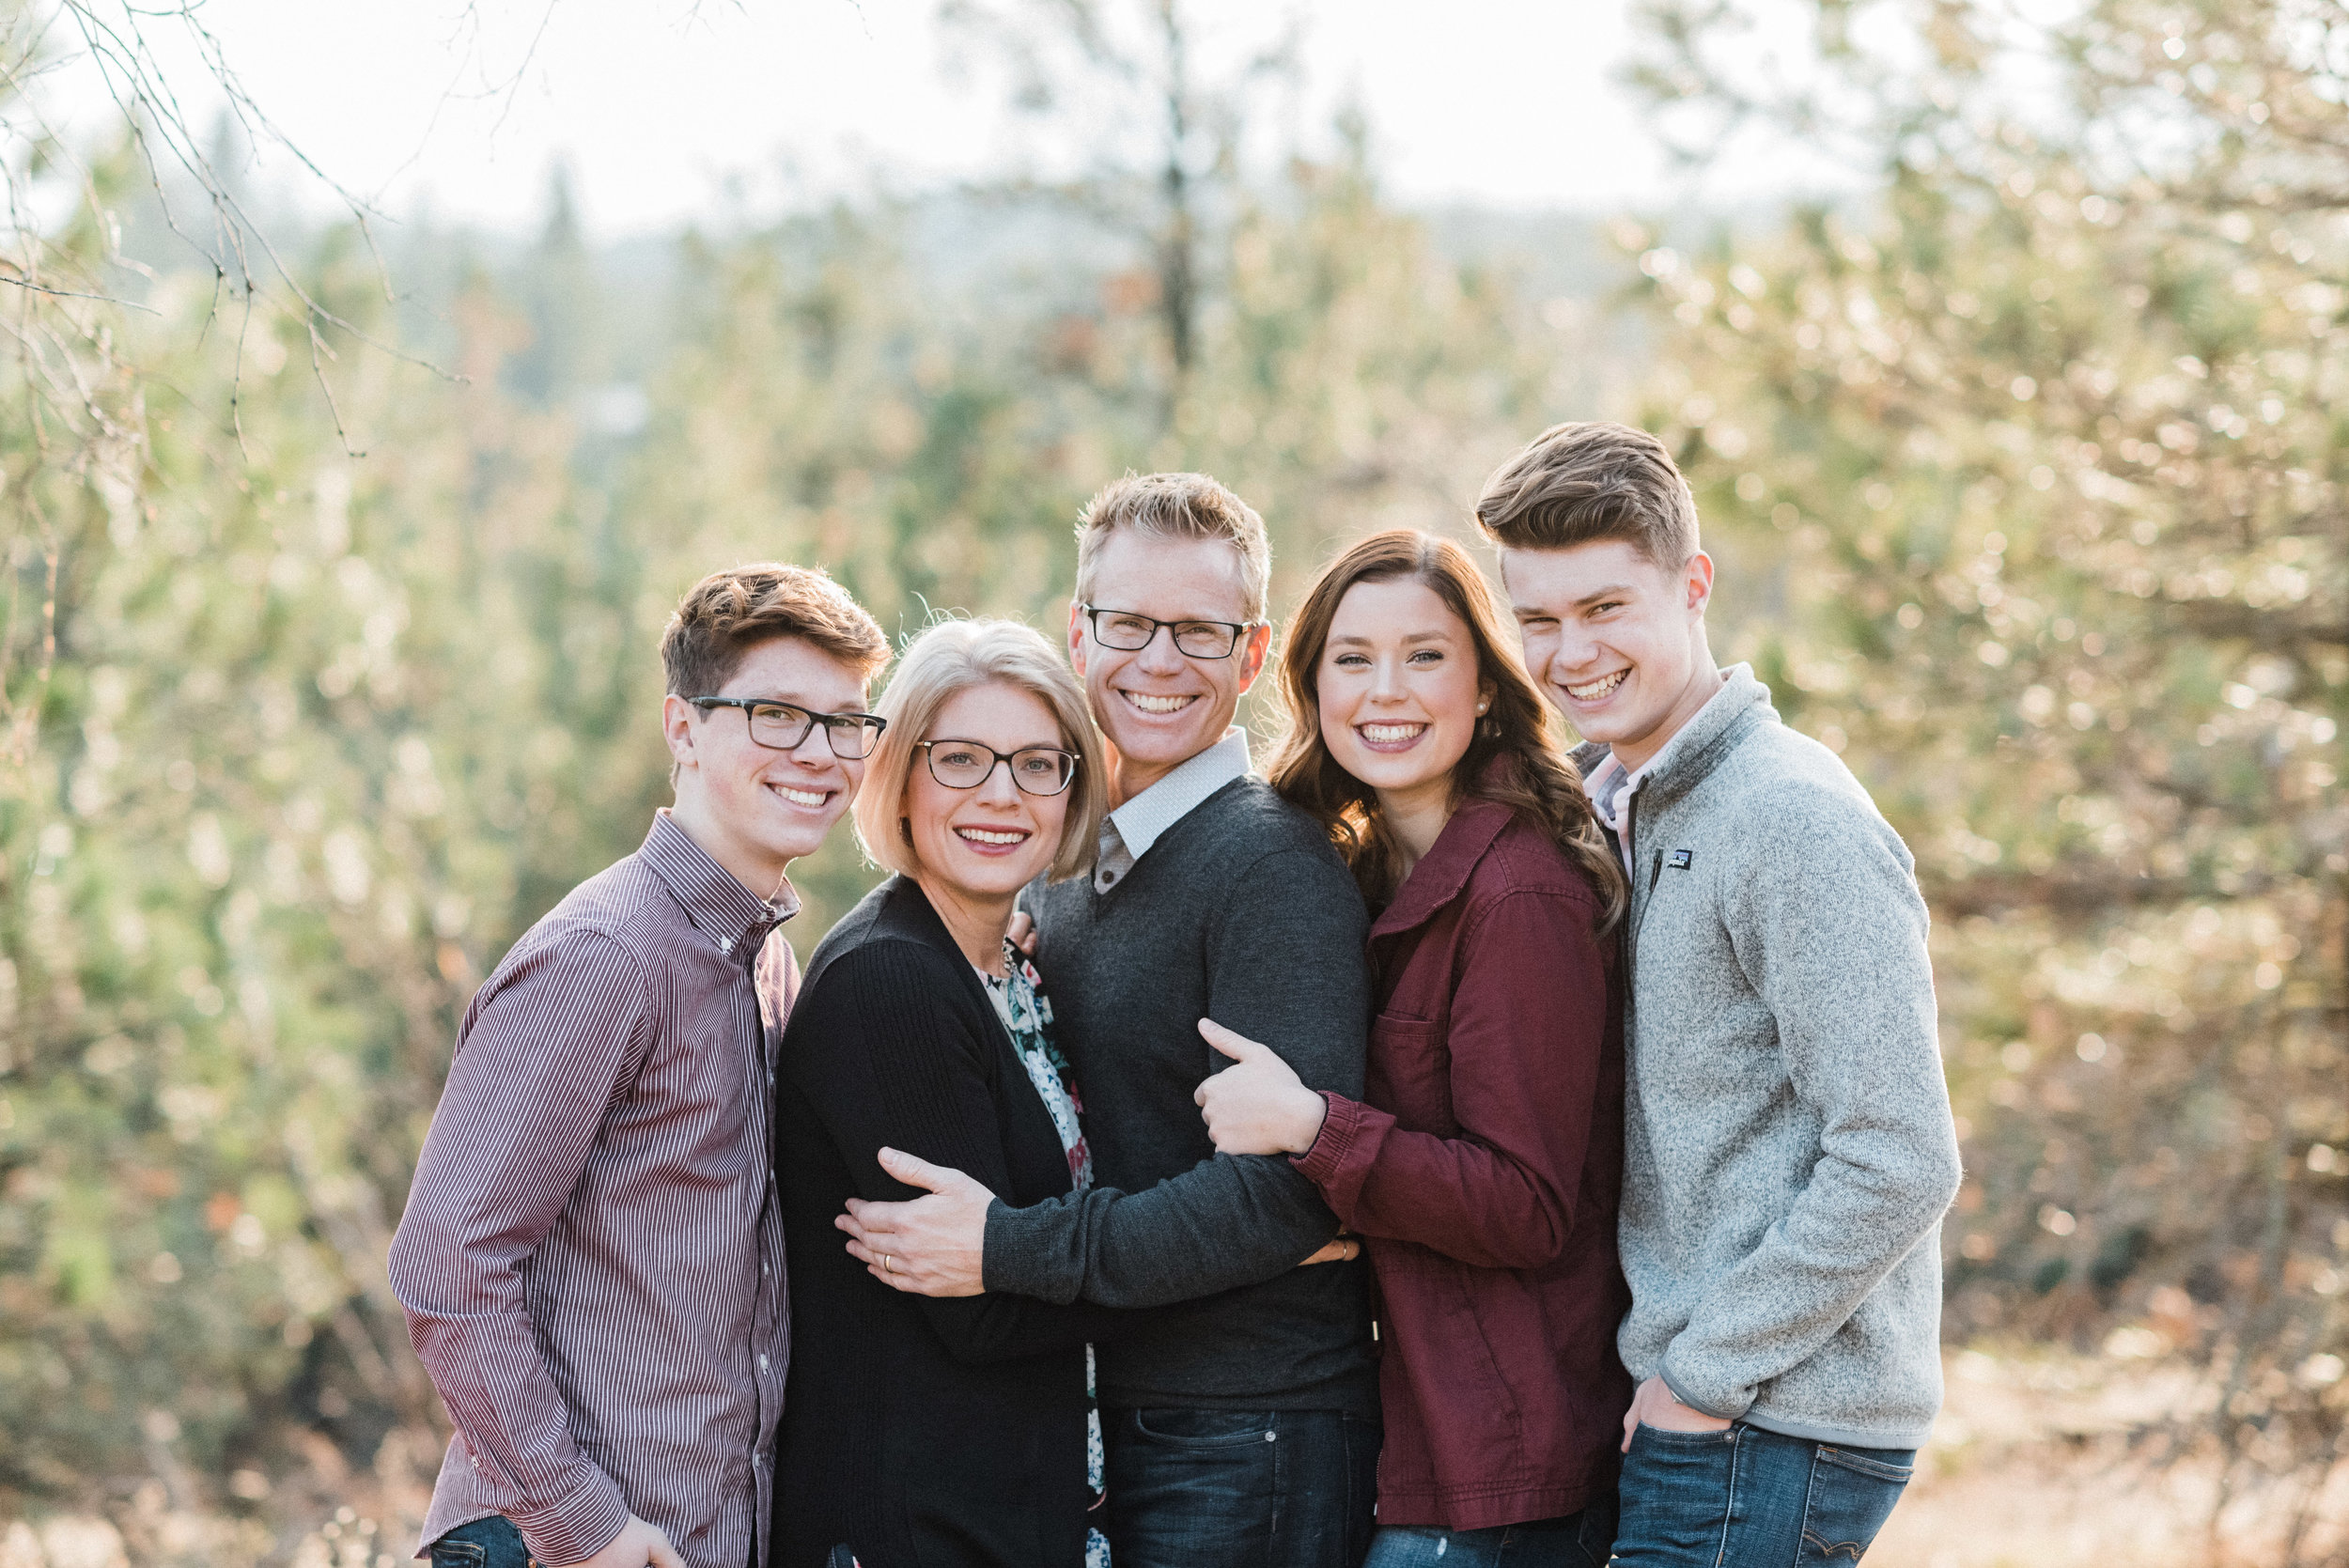 spokane_family_photographer_hammond (12 of 15).jpg